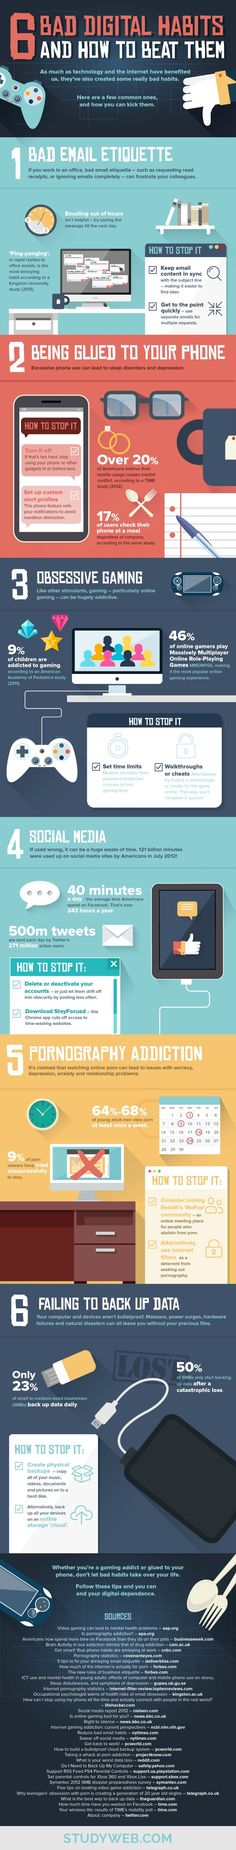 6 Bad Digital Habits (And How To Stop Them) - #infographic